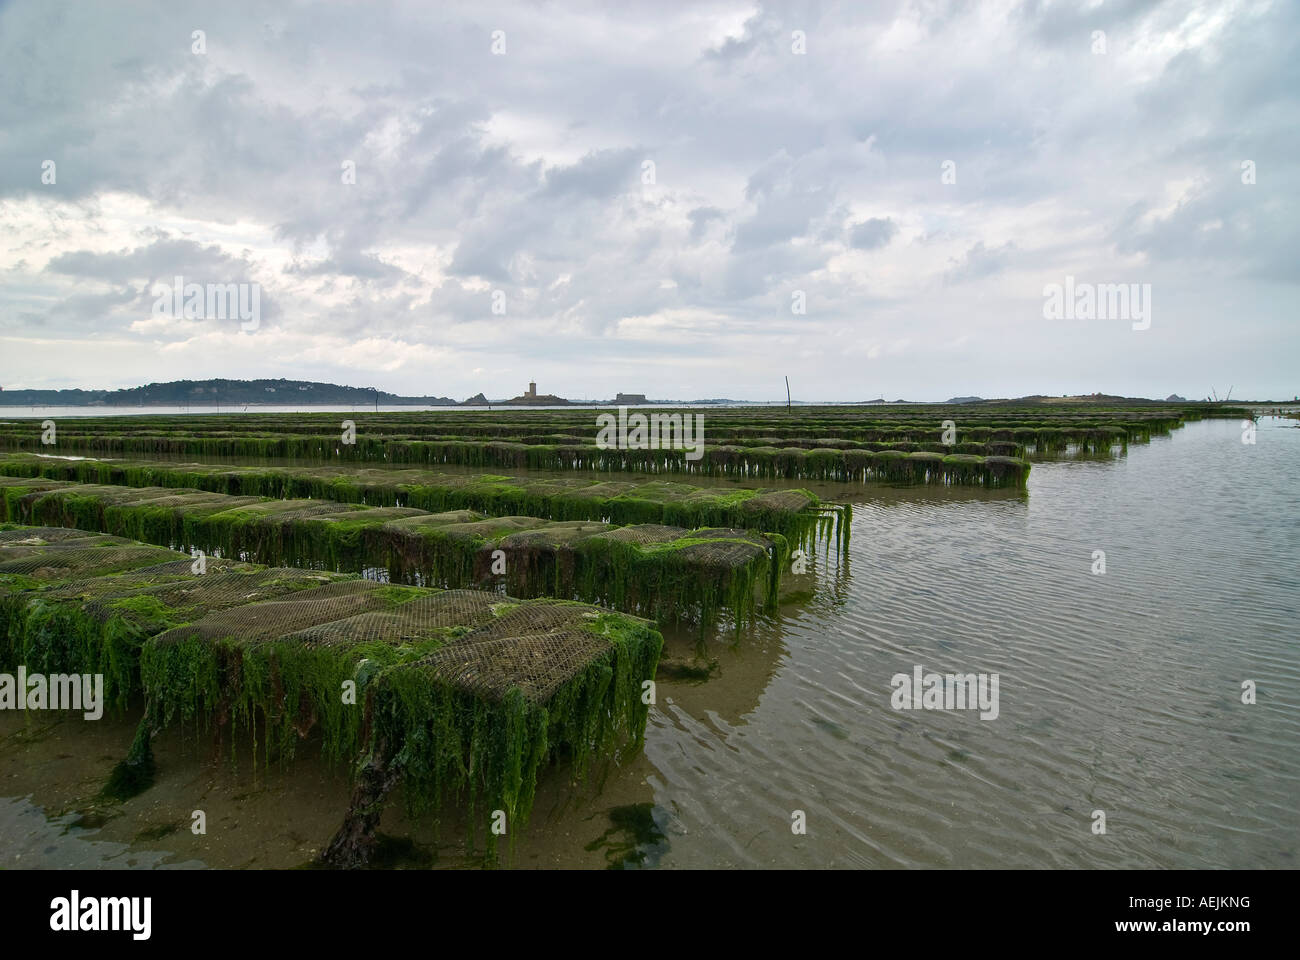 Oyster beds in the bay of Morlaix, Brittany, France Stock Photo